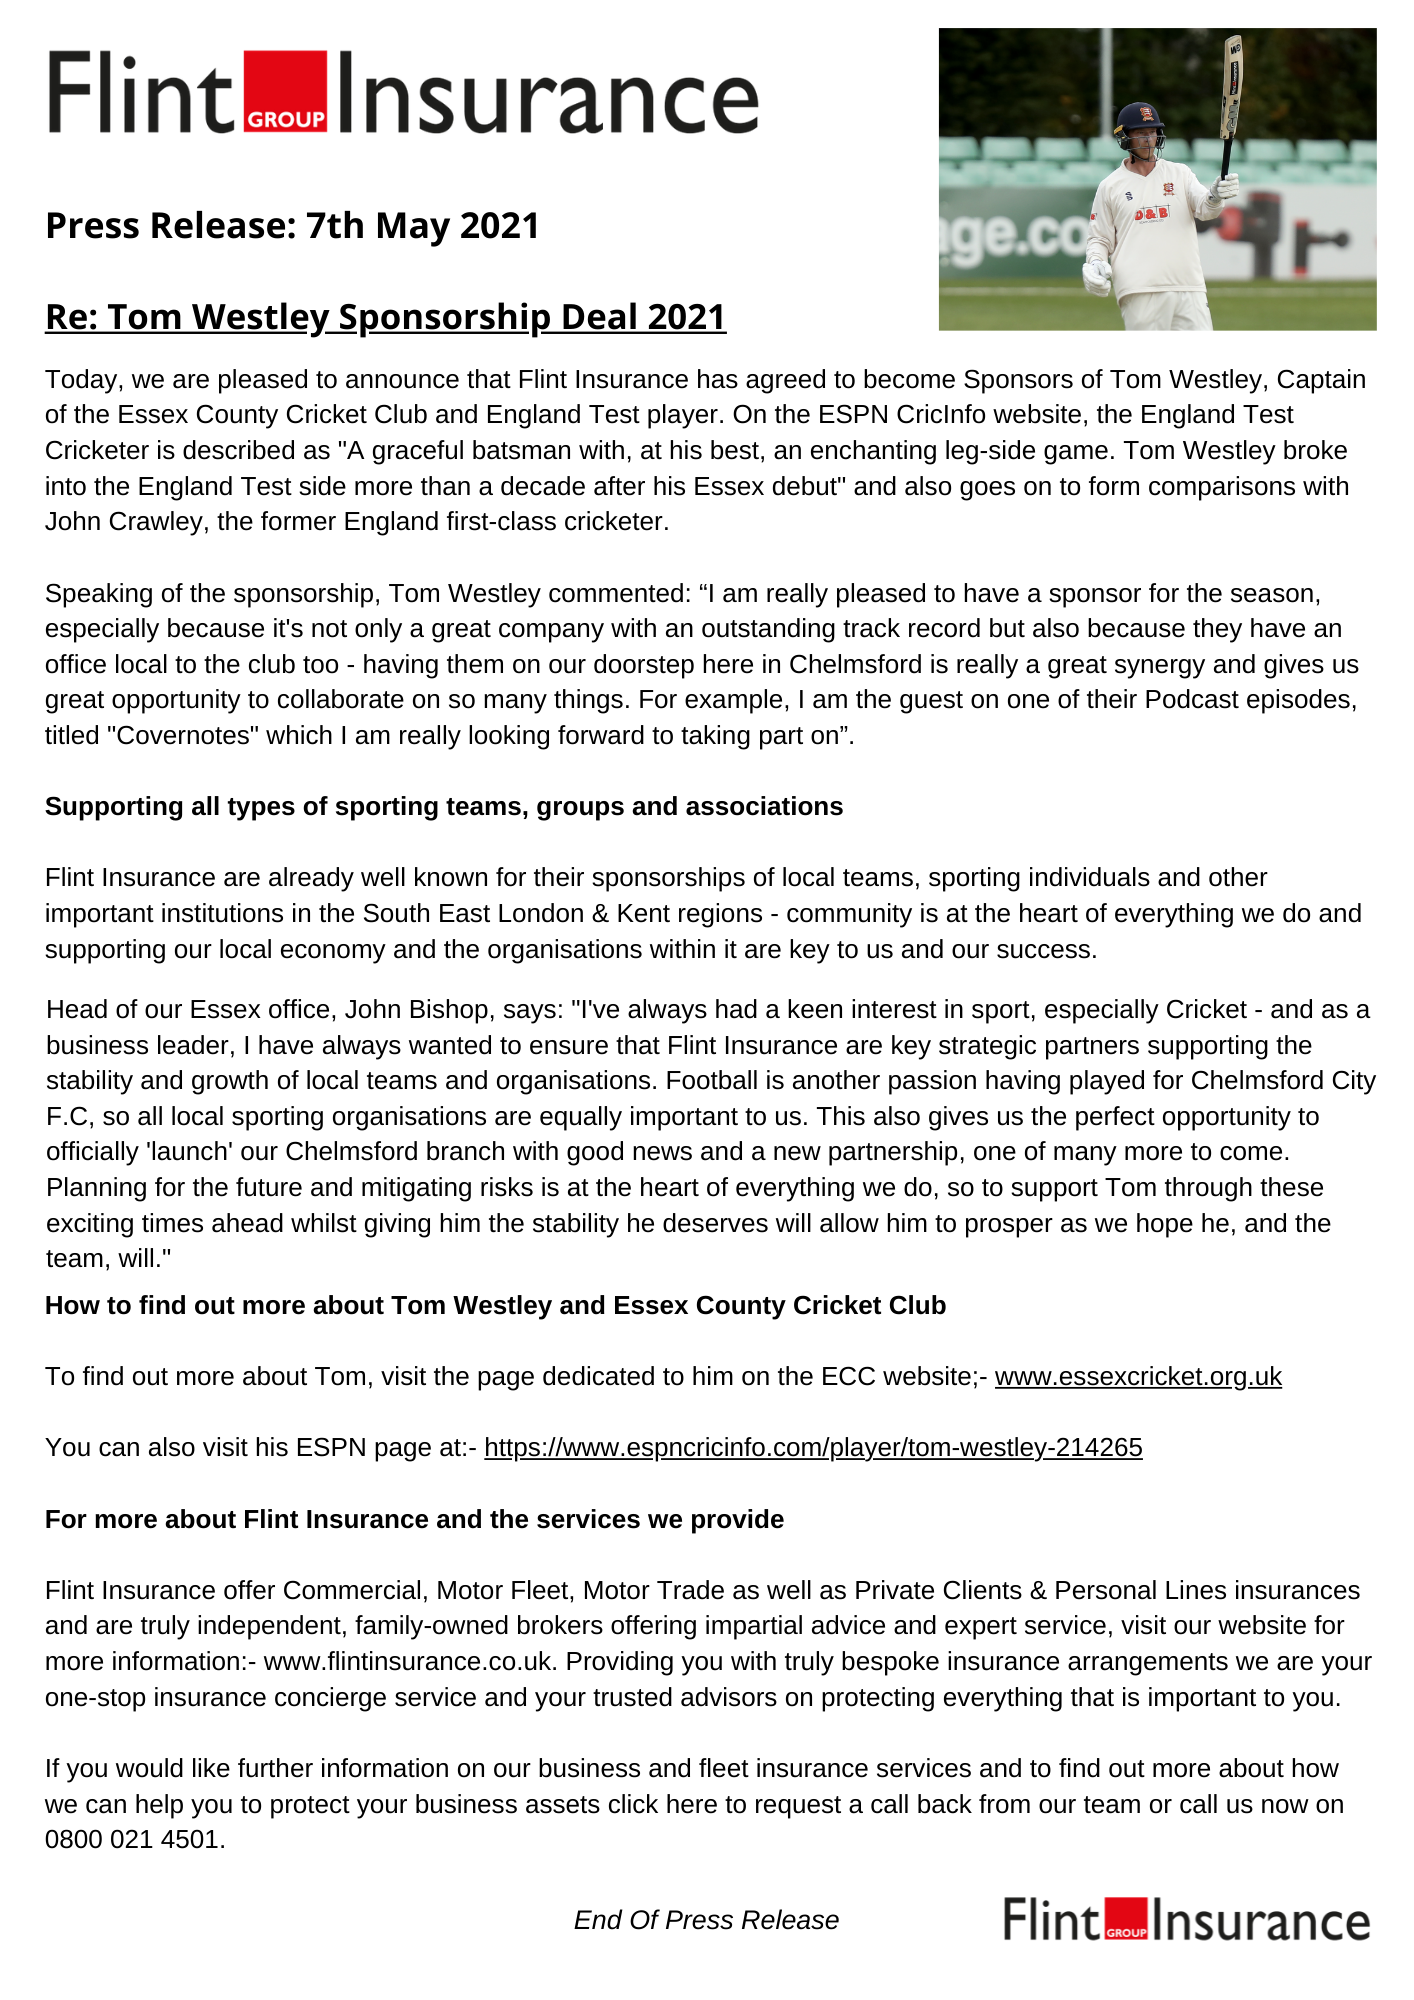 Flint Insurance & Tom Westley Sponsorship Agreement Press Release. We are very pleased to announce that Flint Insurance are now the proud sponsors of Essex County Cricket Clubs' Captain, Tom Westley, who is also an England Test Cricketer, having being called up several times. Our partnership with Tom was arranged by John Bishop, who also manages our Essex Branch.